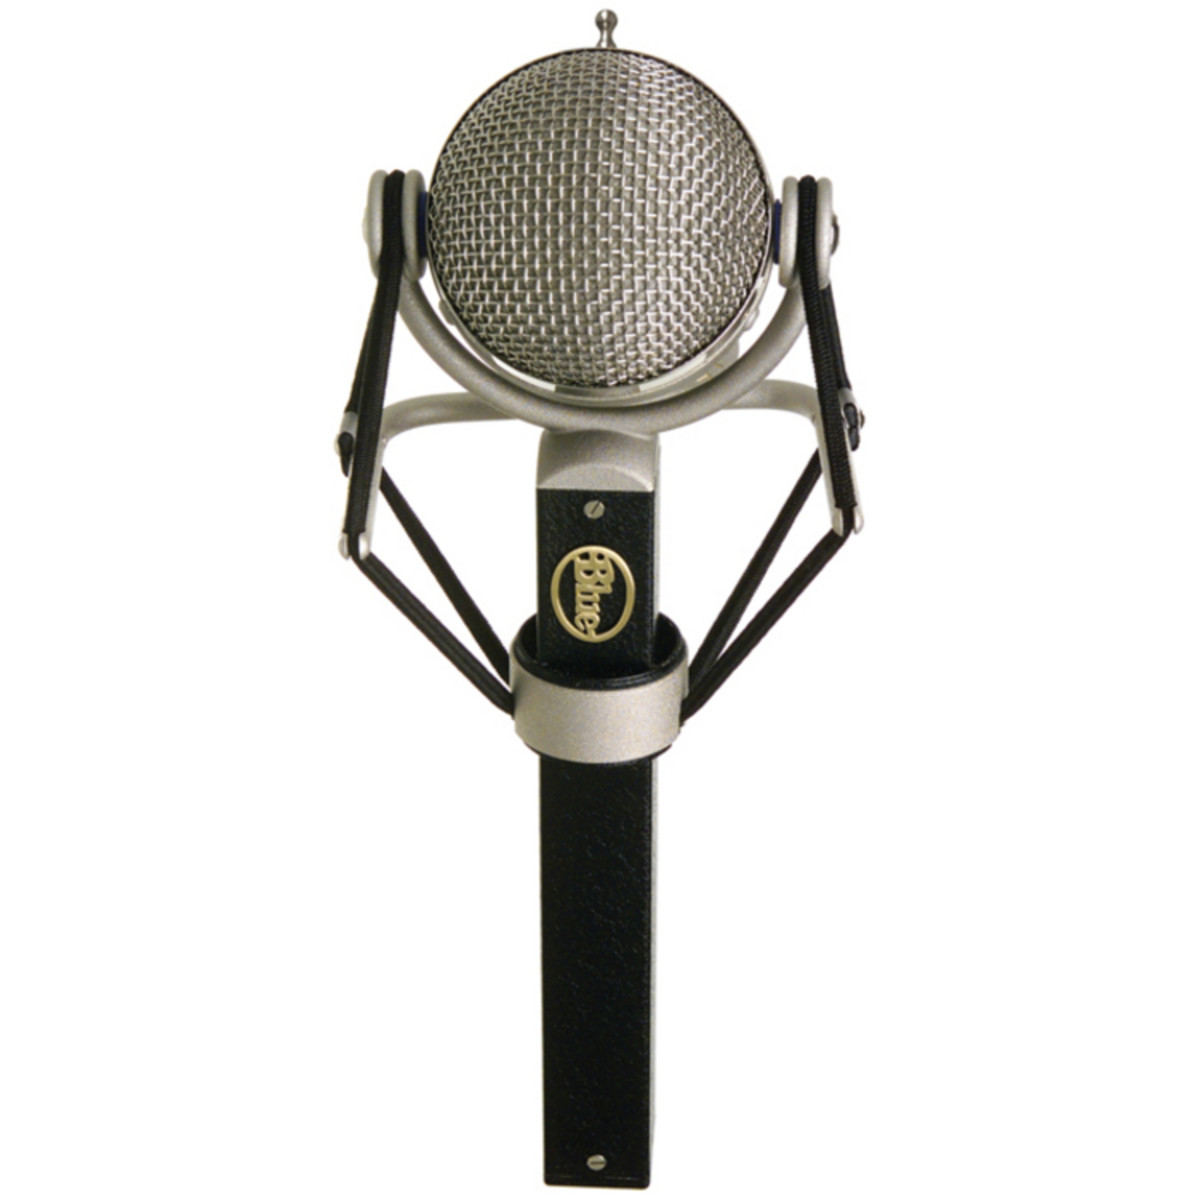 Blue Dragonfly Cardioid Condenser Microphone at Gear4music.com